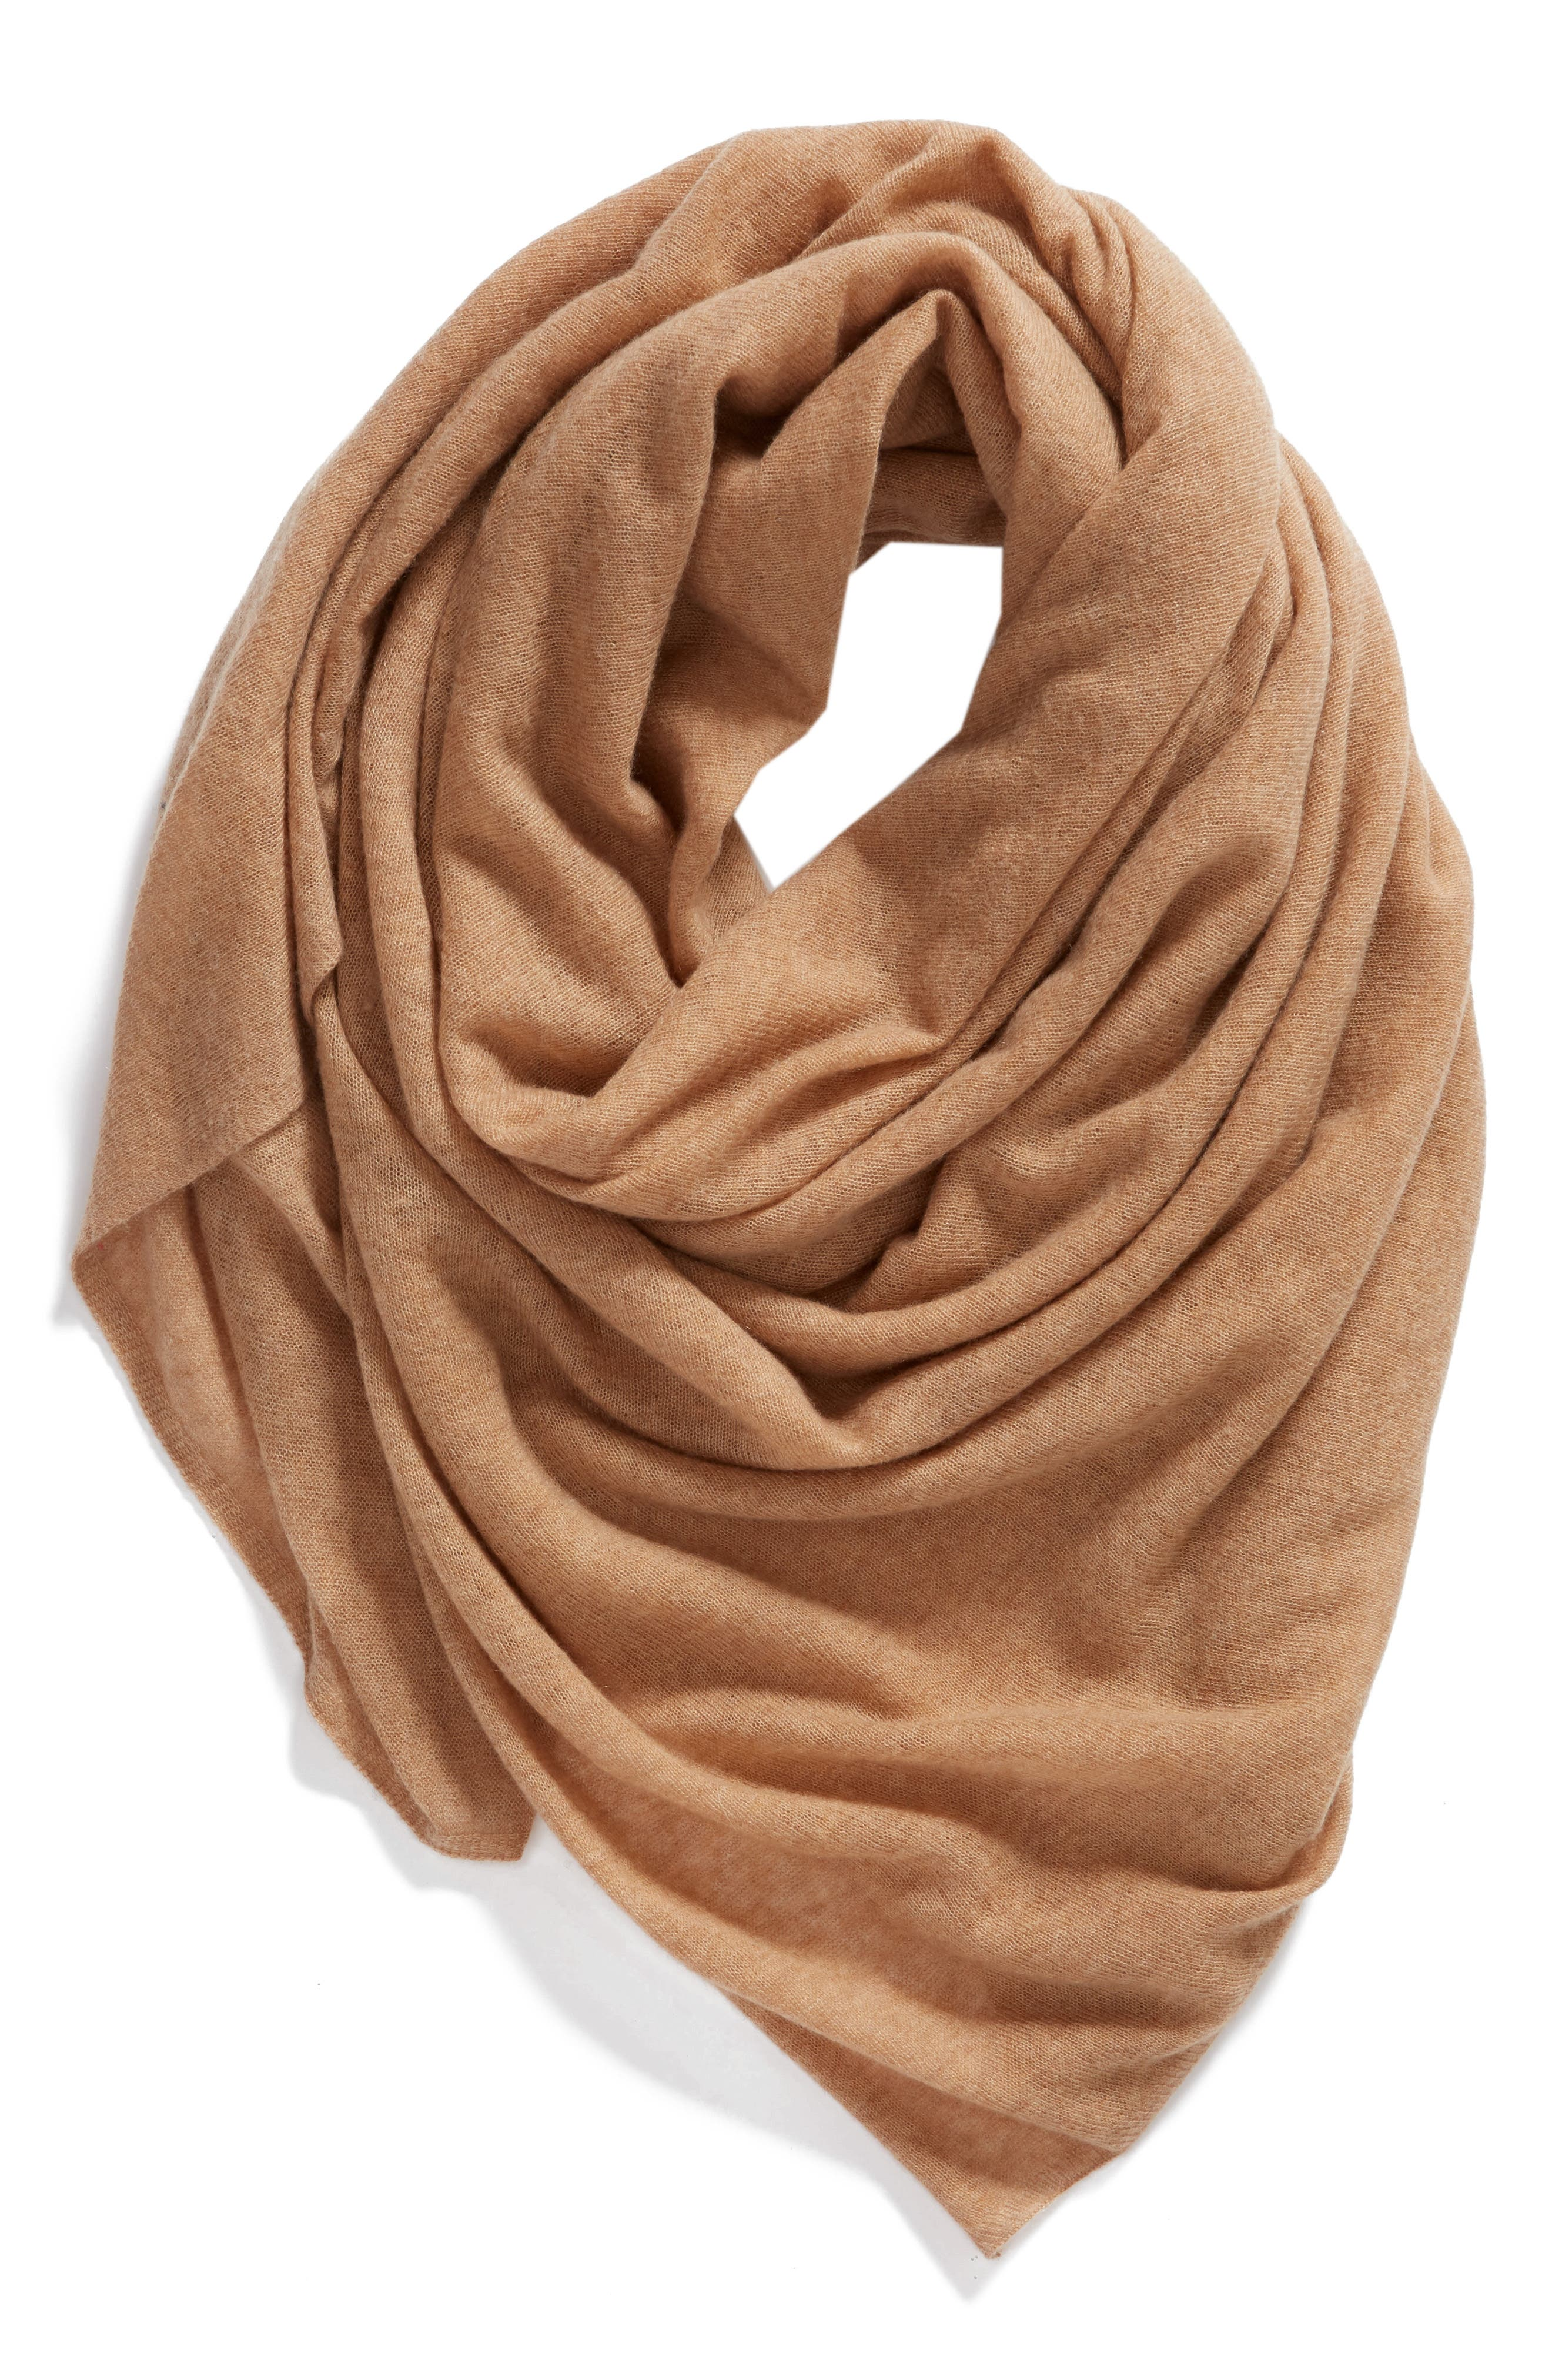 76c28c5a2 Women's Brown Scarves | Nordstrom